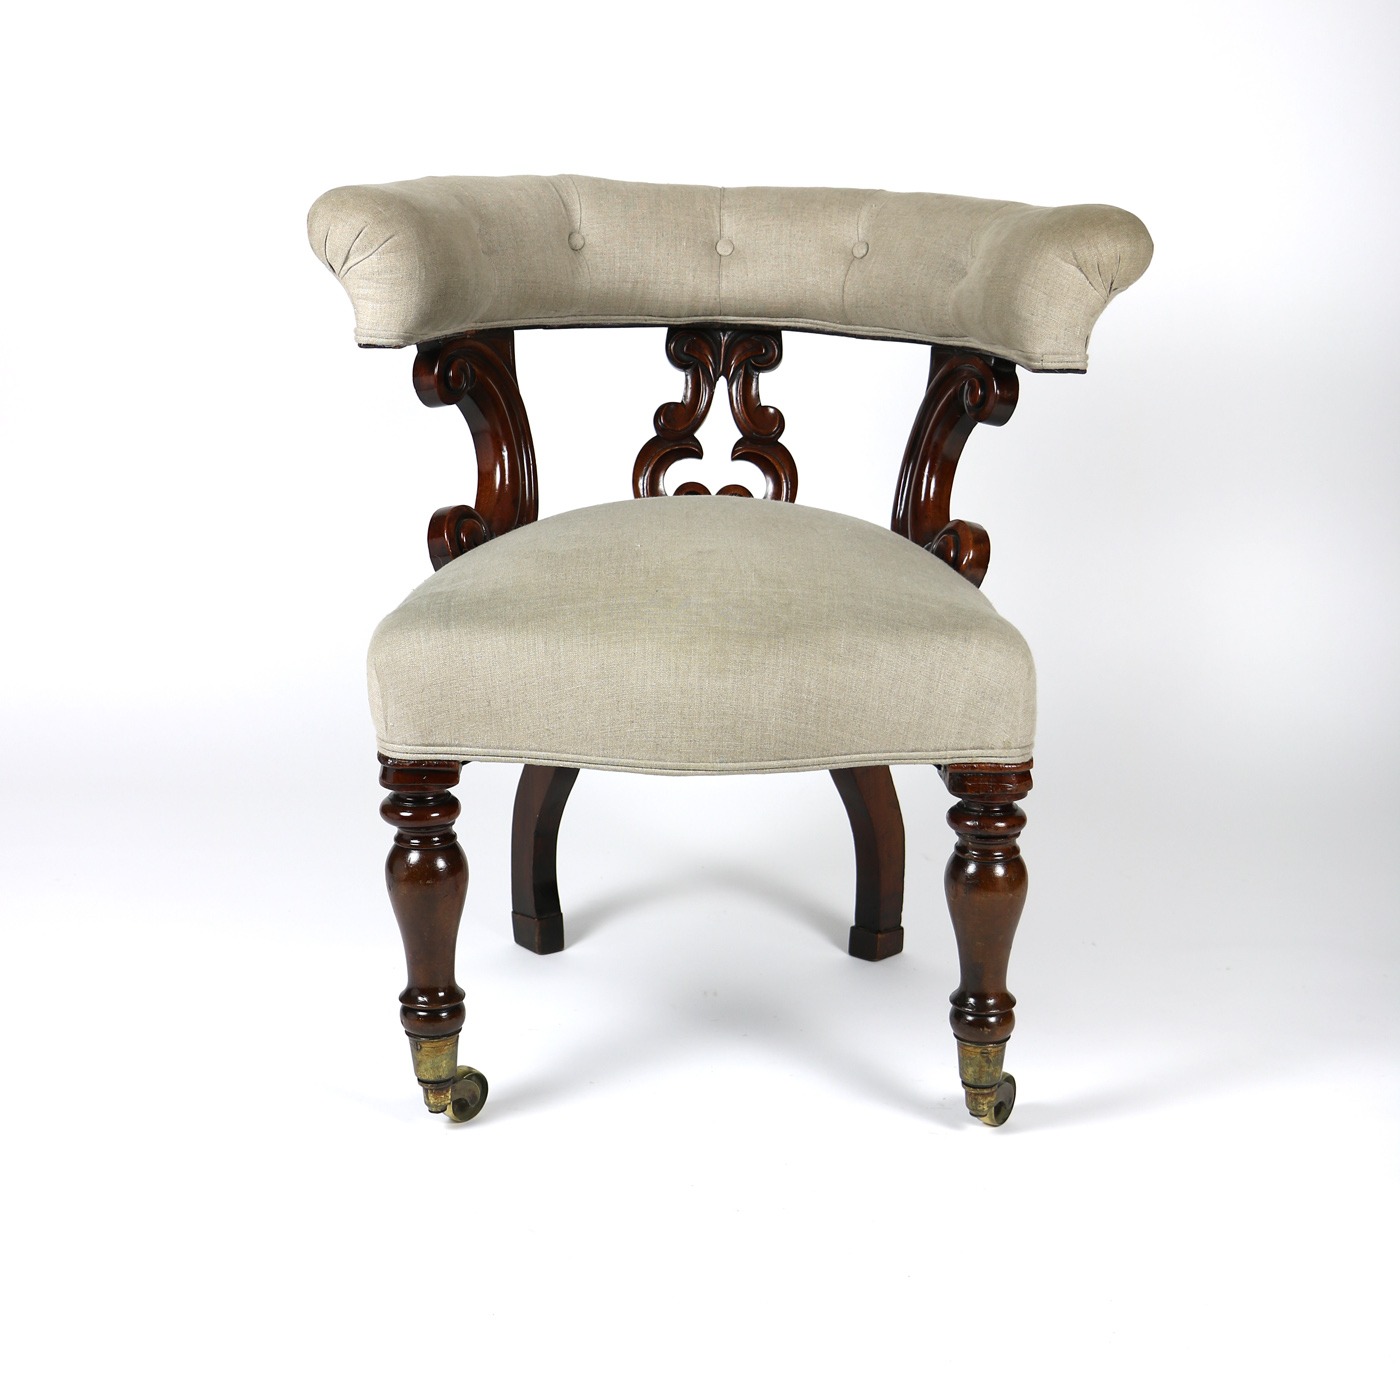 19th Century Carved Mahogany Library Chair English circa 1850